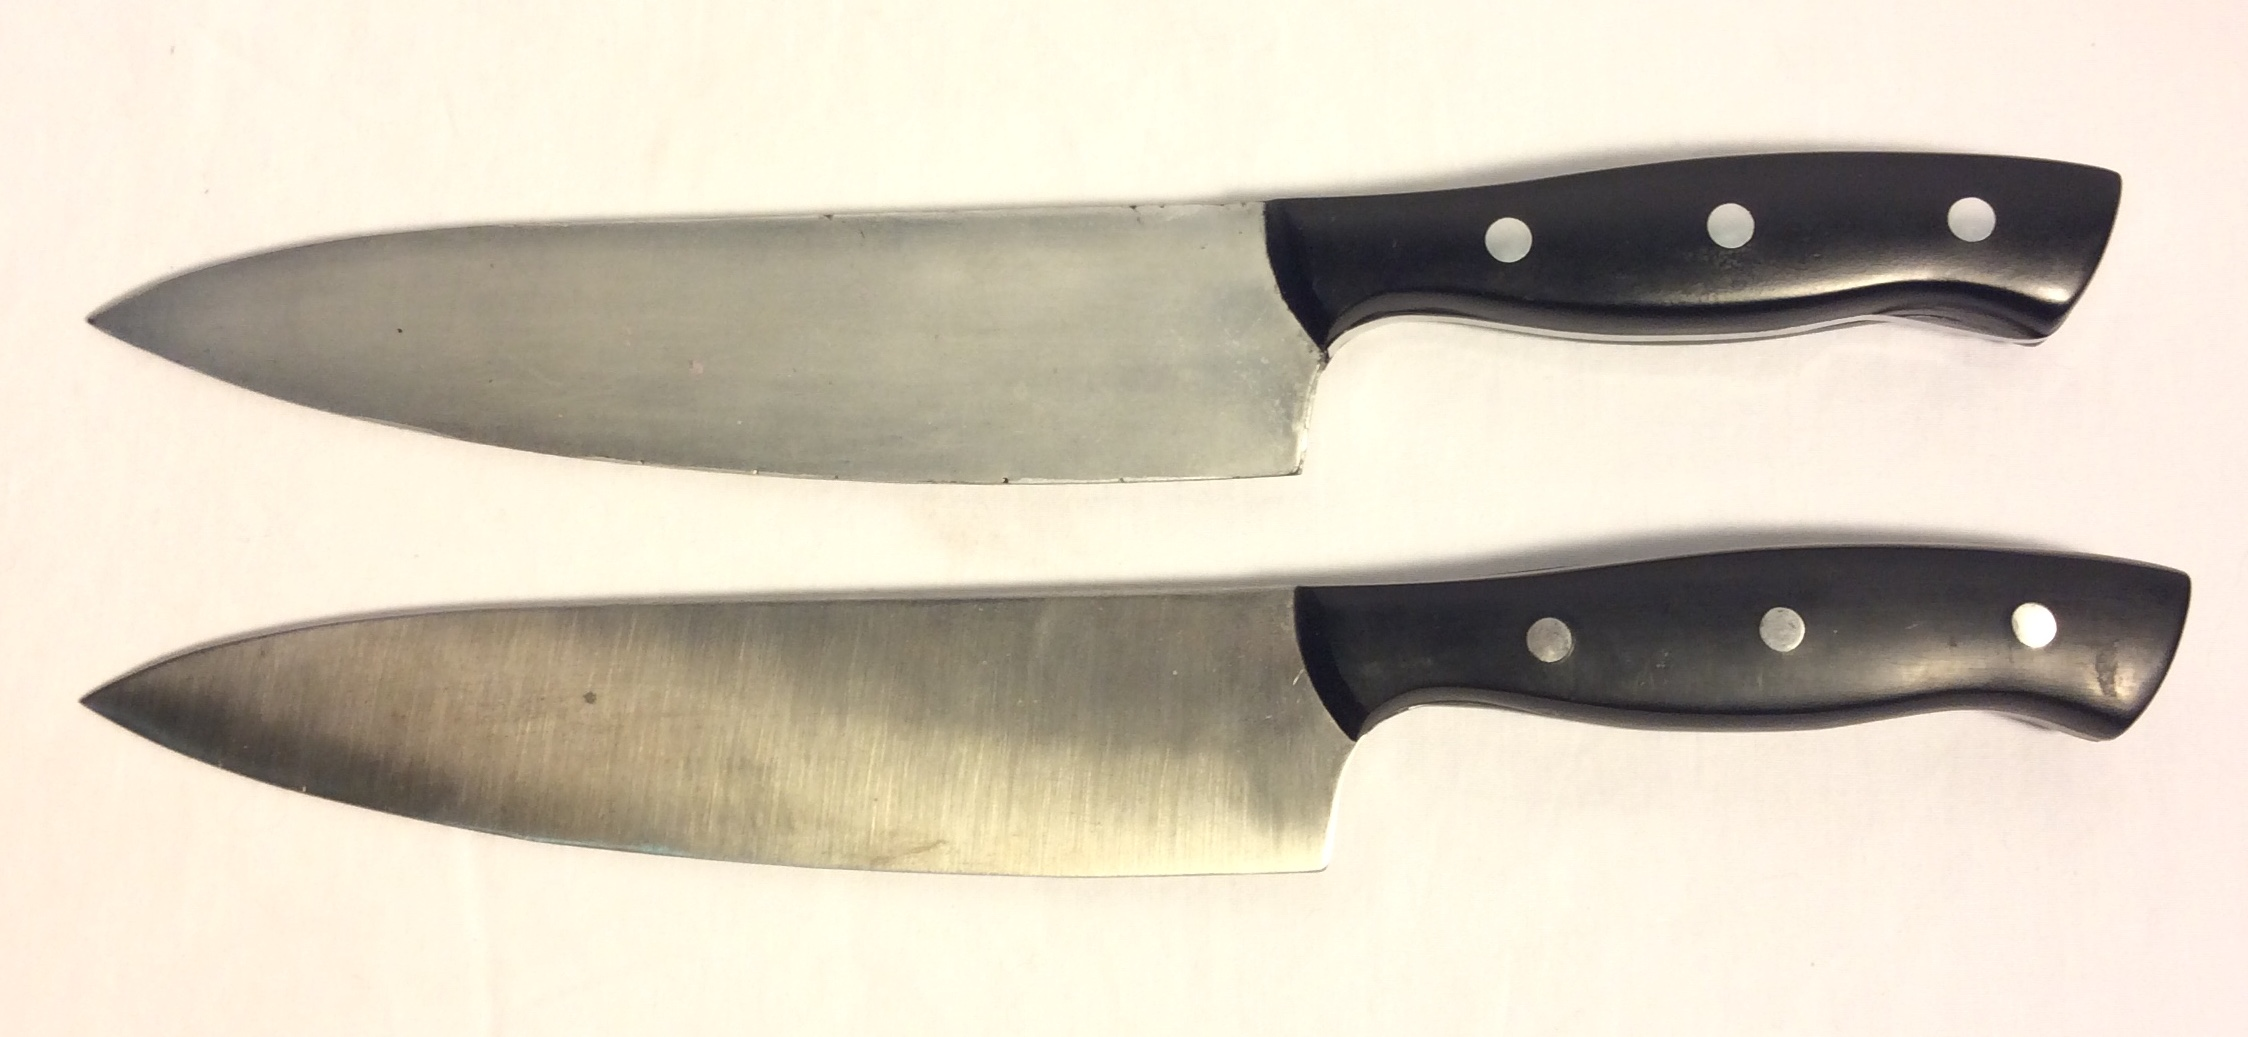 Henckel black & silver chef's knife